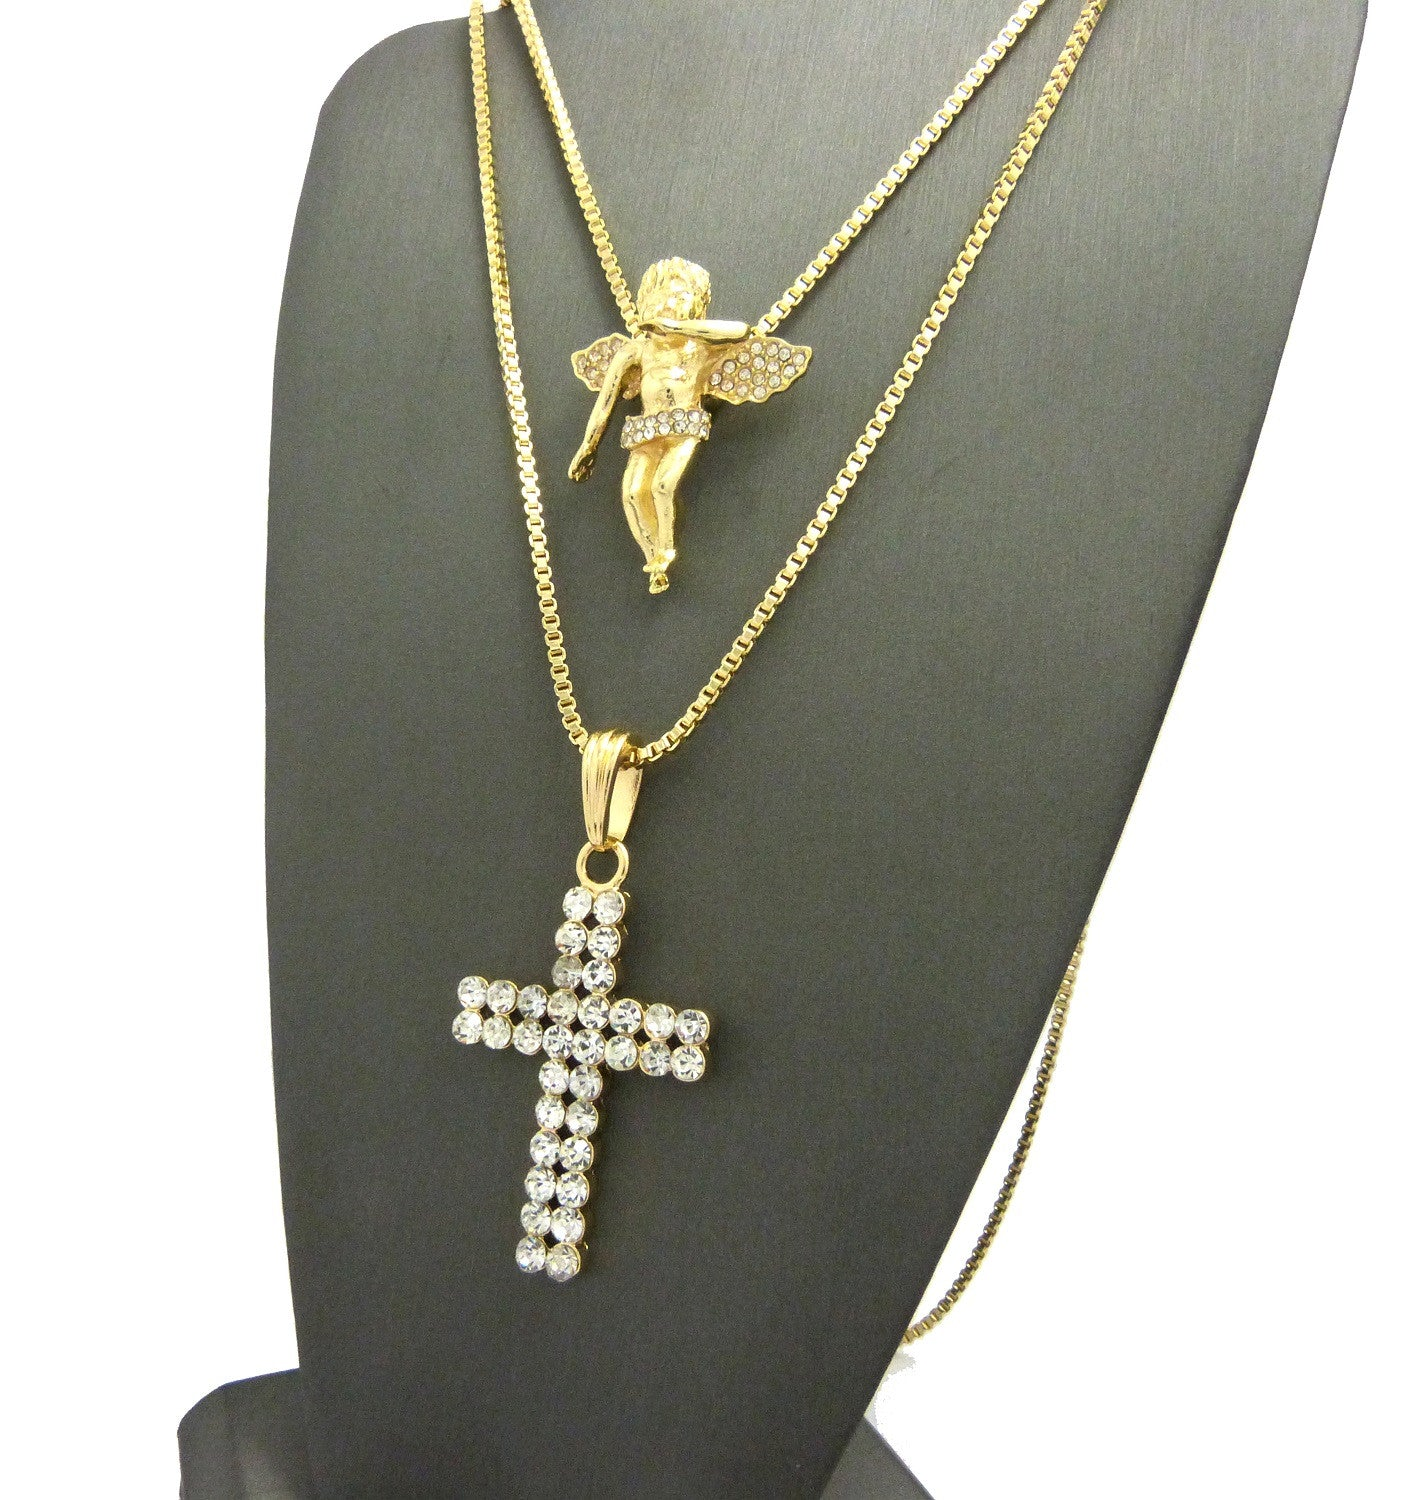 2 Chain Set: Iced Out Cherub Angel with a Double Ice Cross